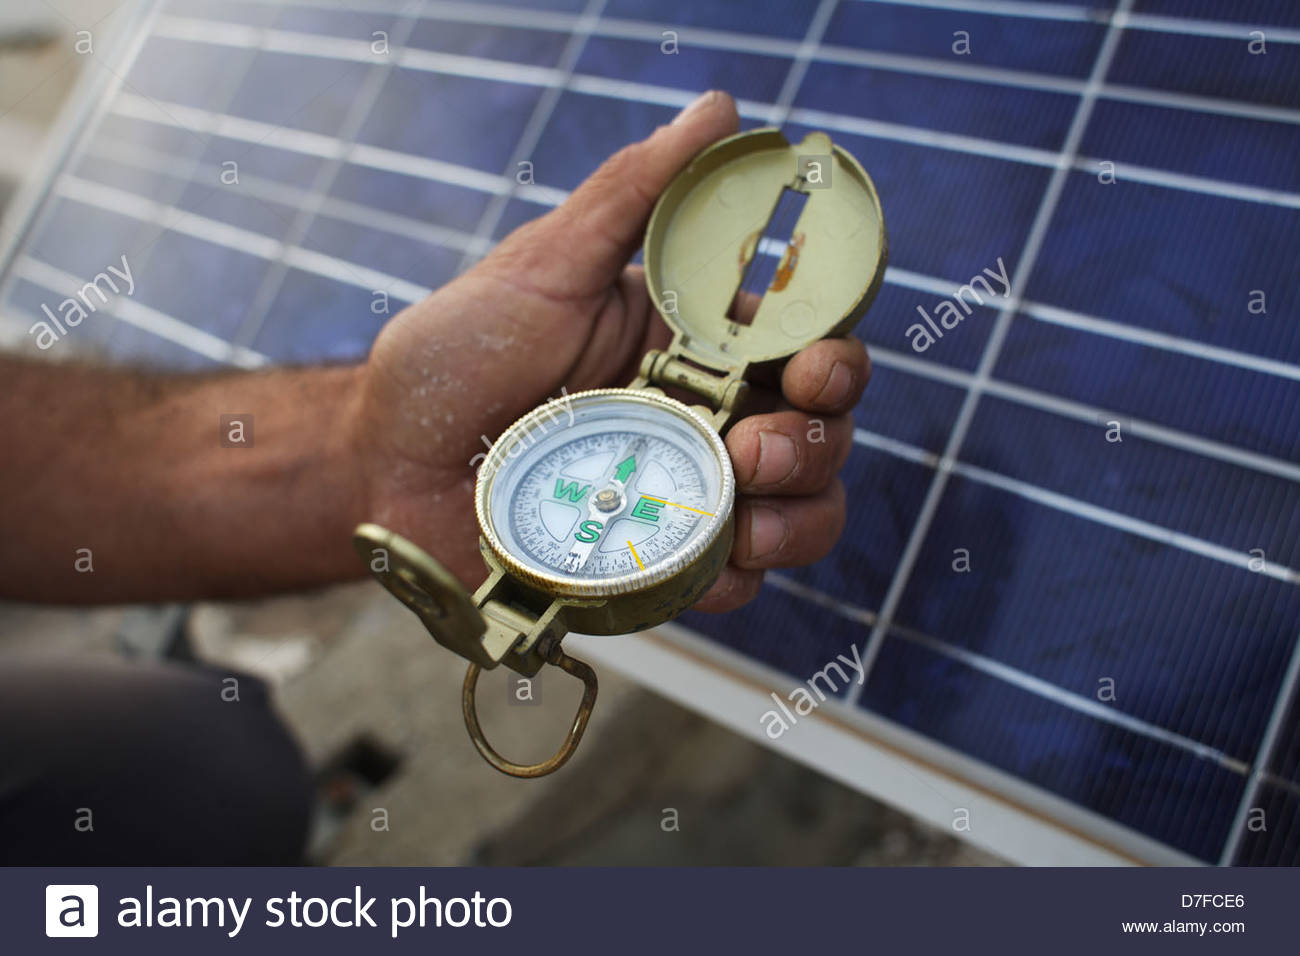 Human hand holds a compass near solar panel, Oulad, Morocco - Stock Image